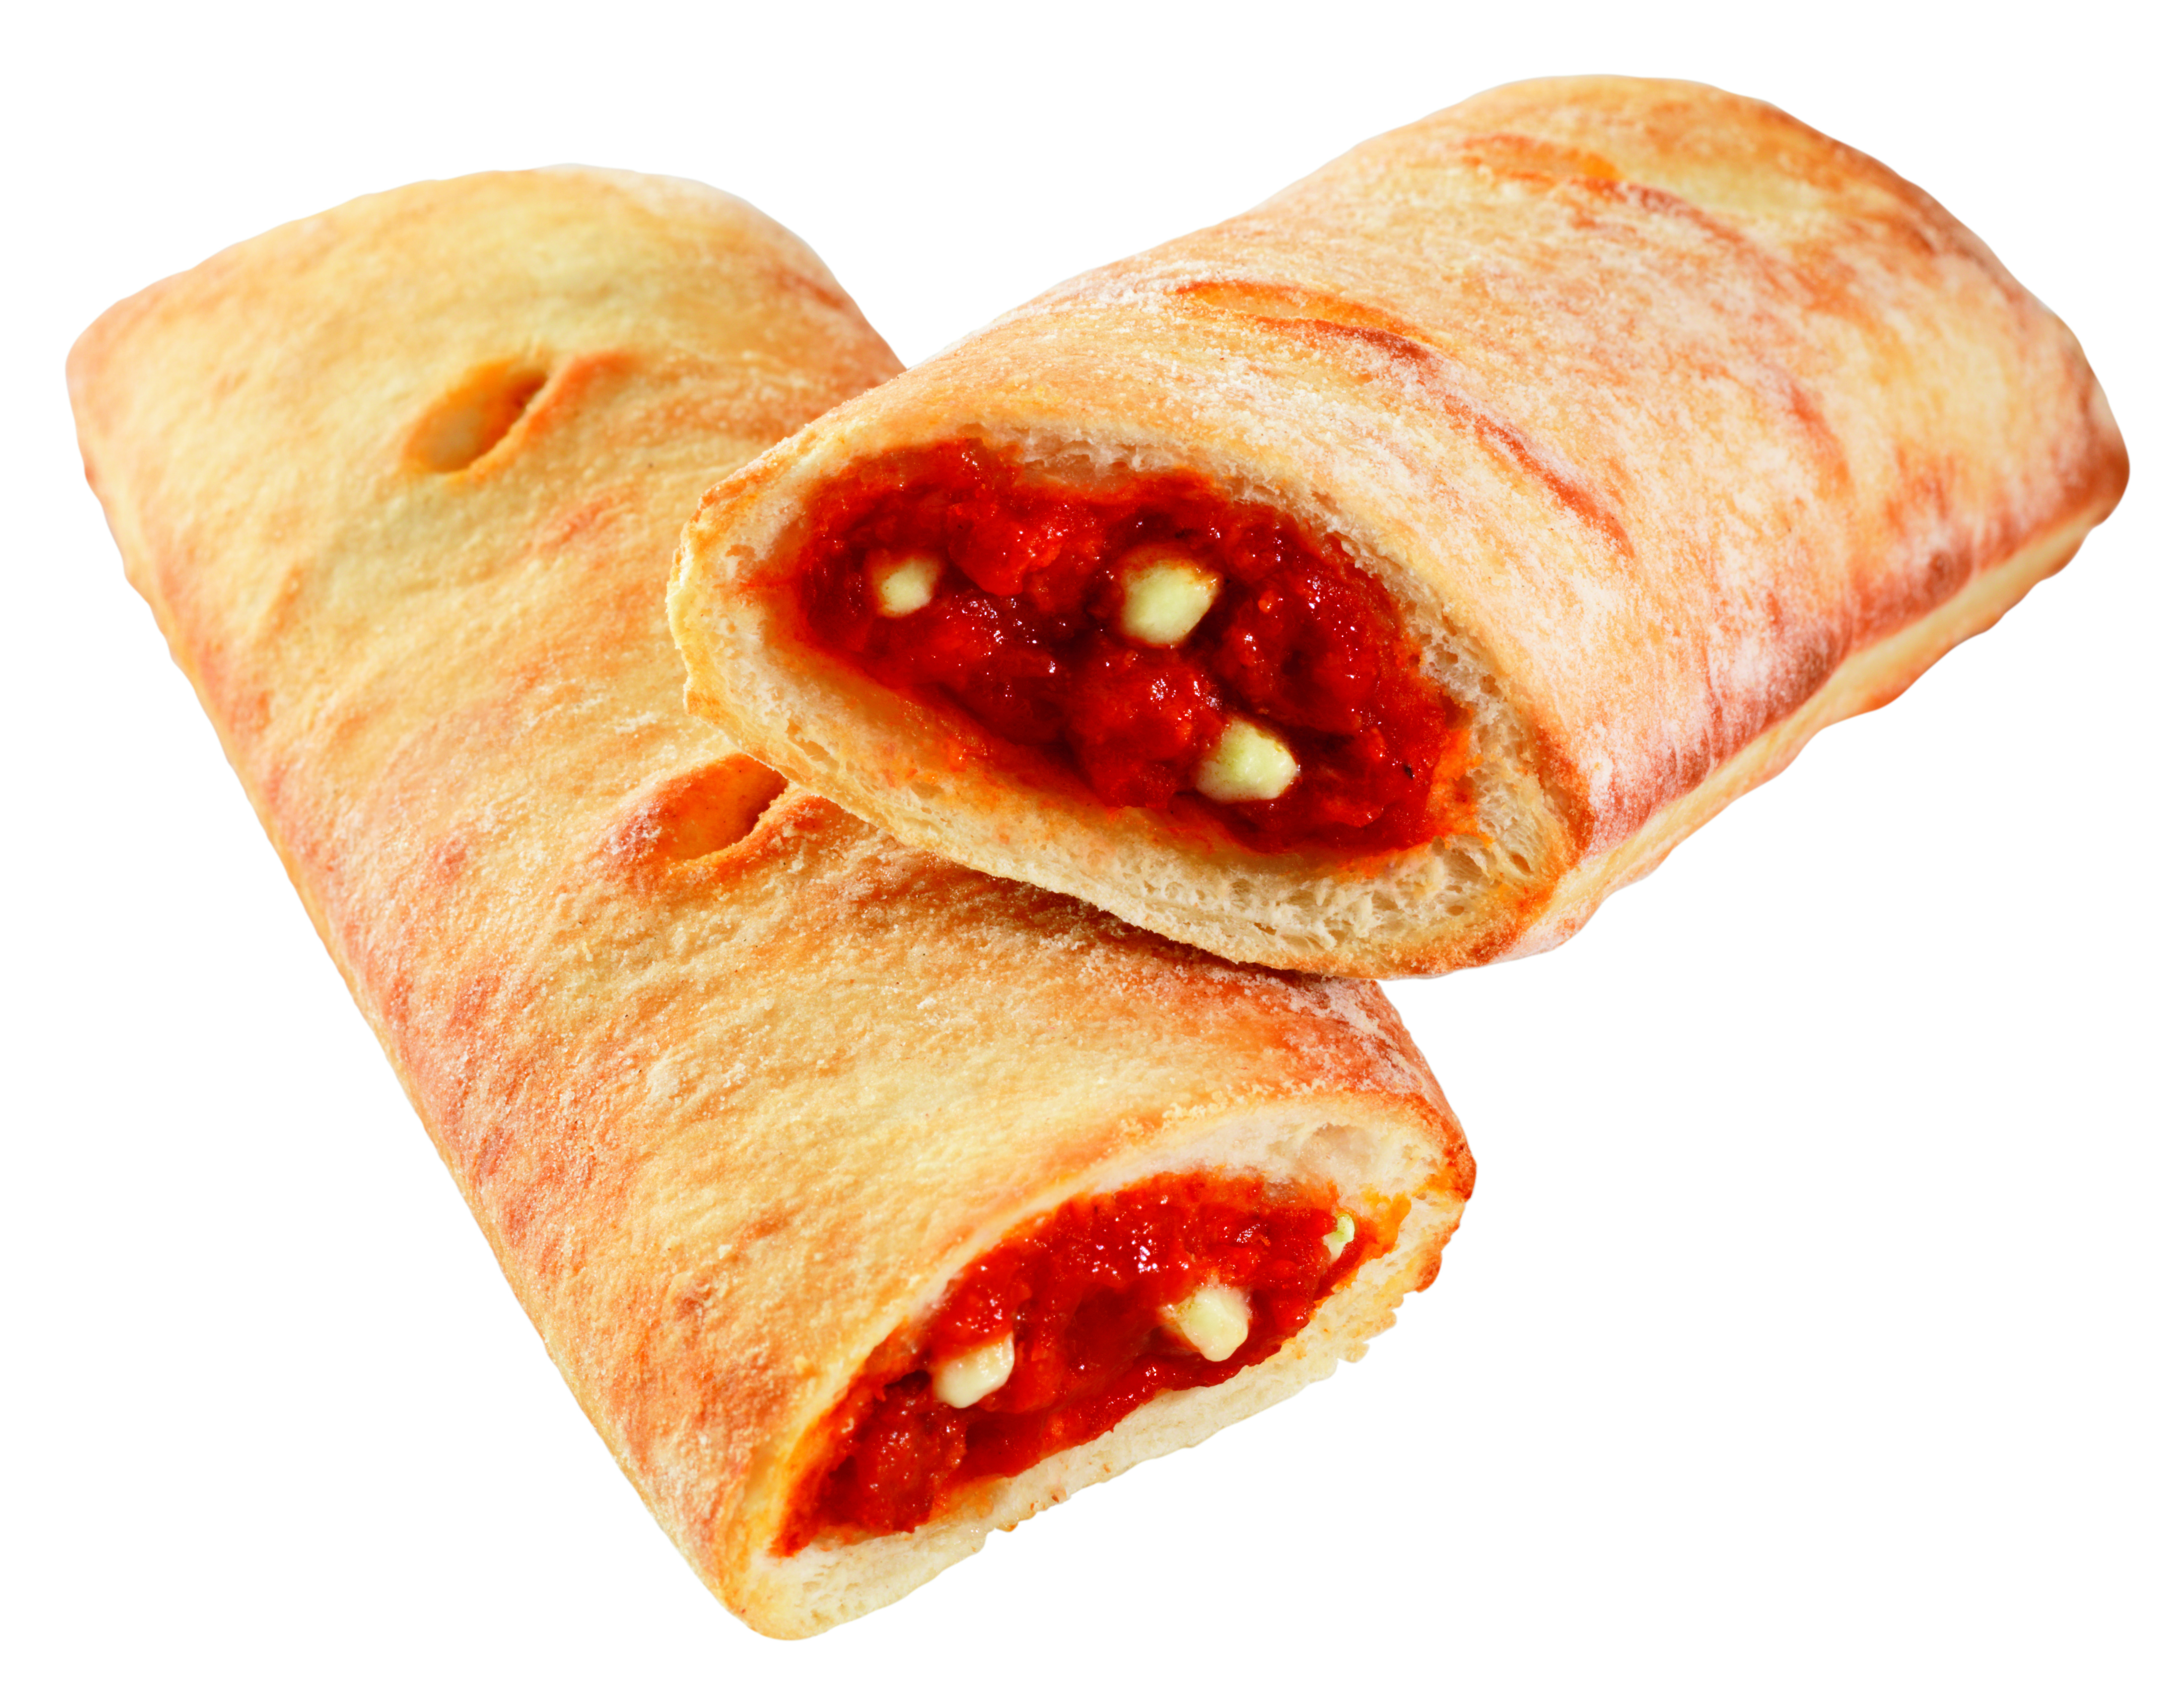 Pepperoni &amp; Cheese Stuffed Breadsticks ($1.59)